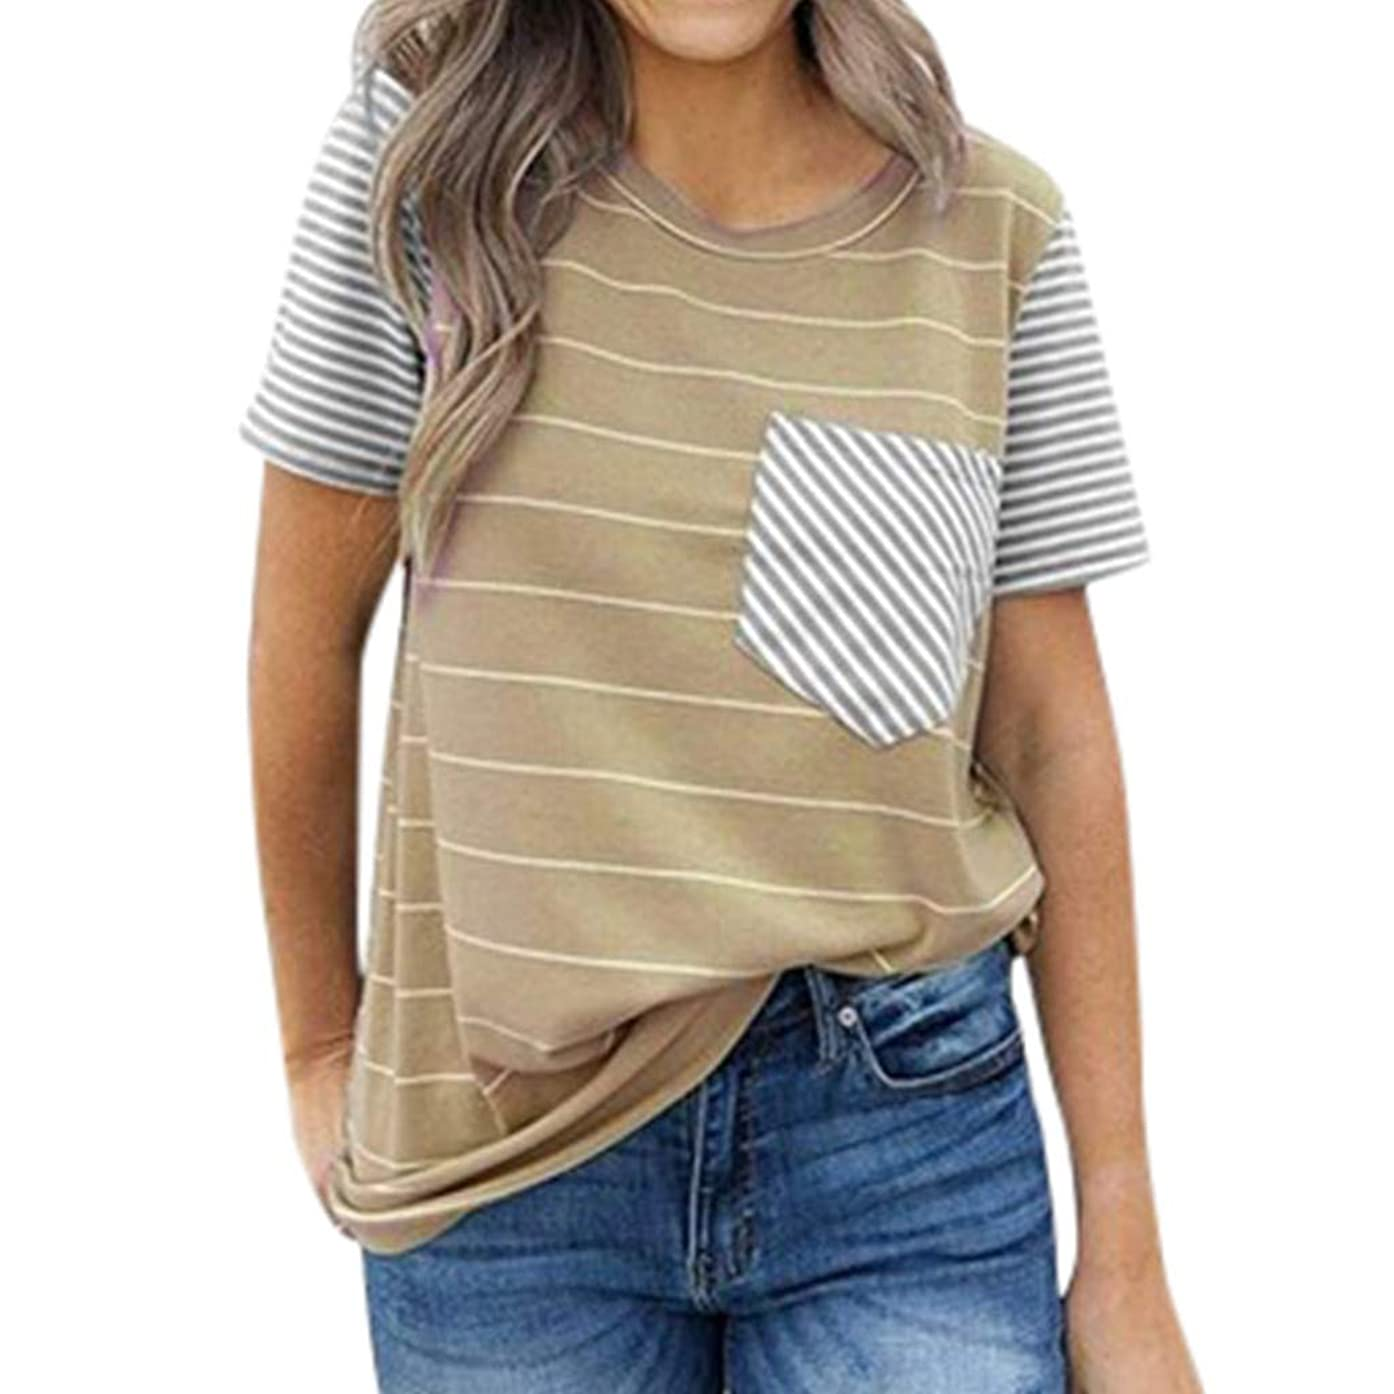 Amlaiworld Women's Tops Short-Sleeve Crewneck T-Shirt Summer Striped Casual Blouse Tee Shirt with Pocket Sport Shirt